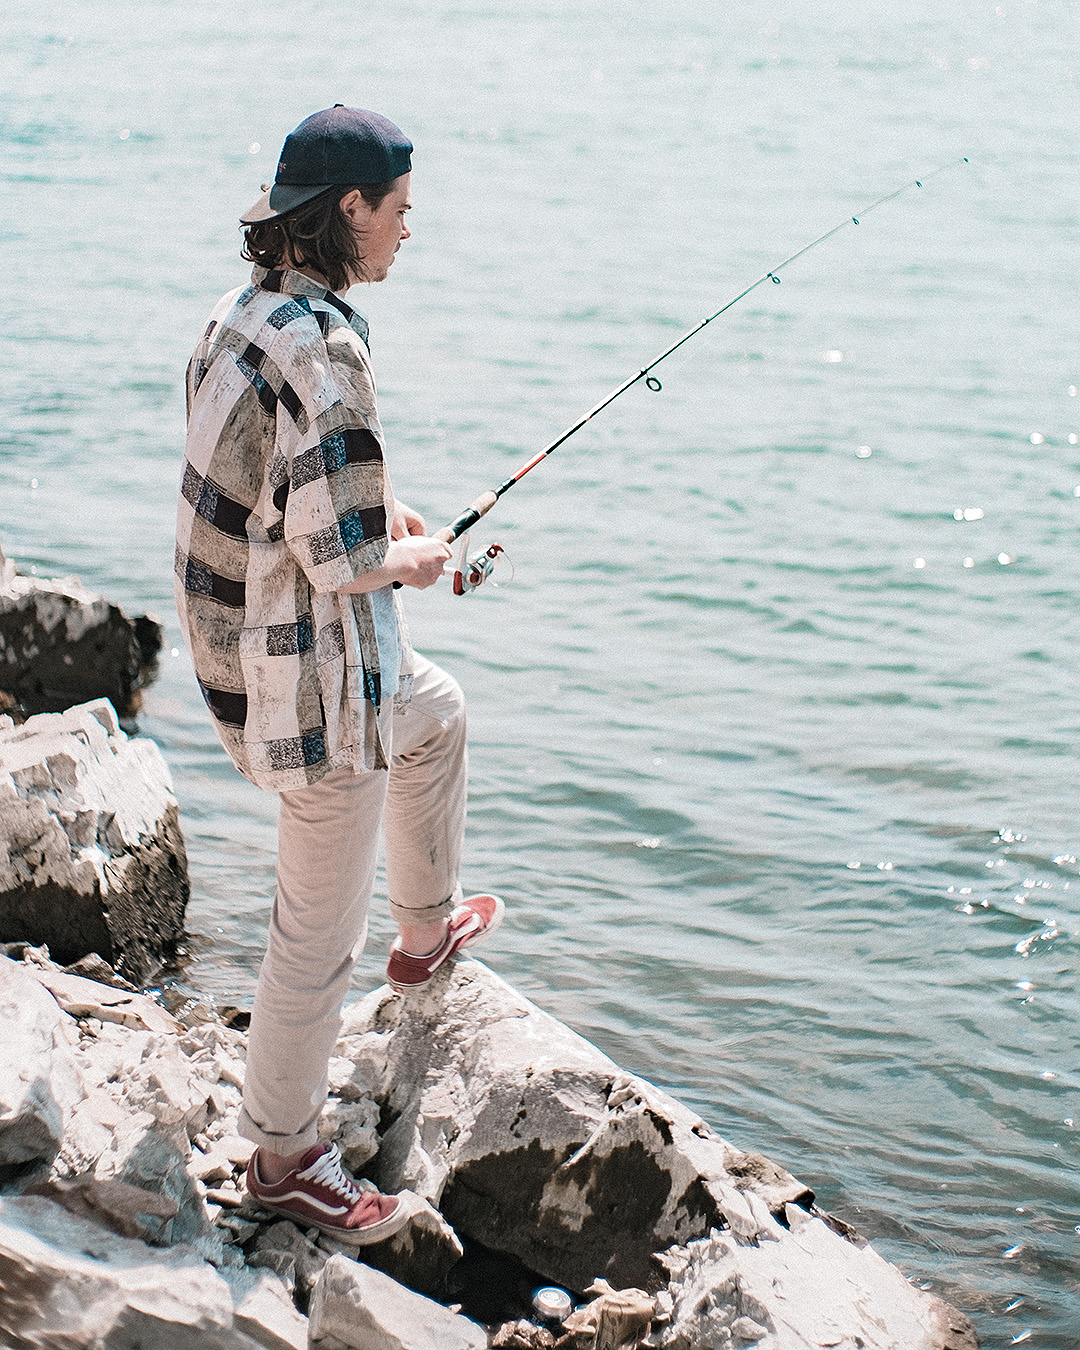 A guy fishes off the rocks.